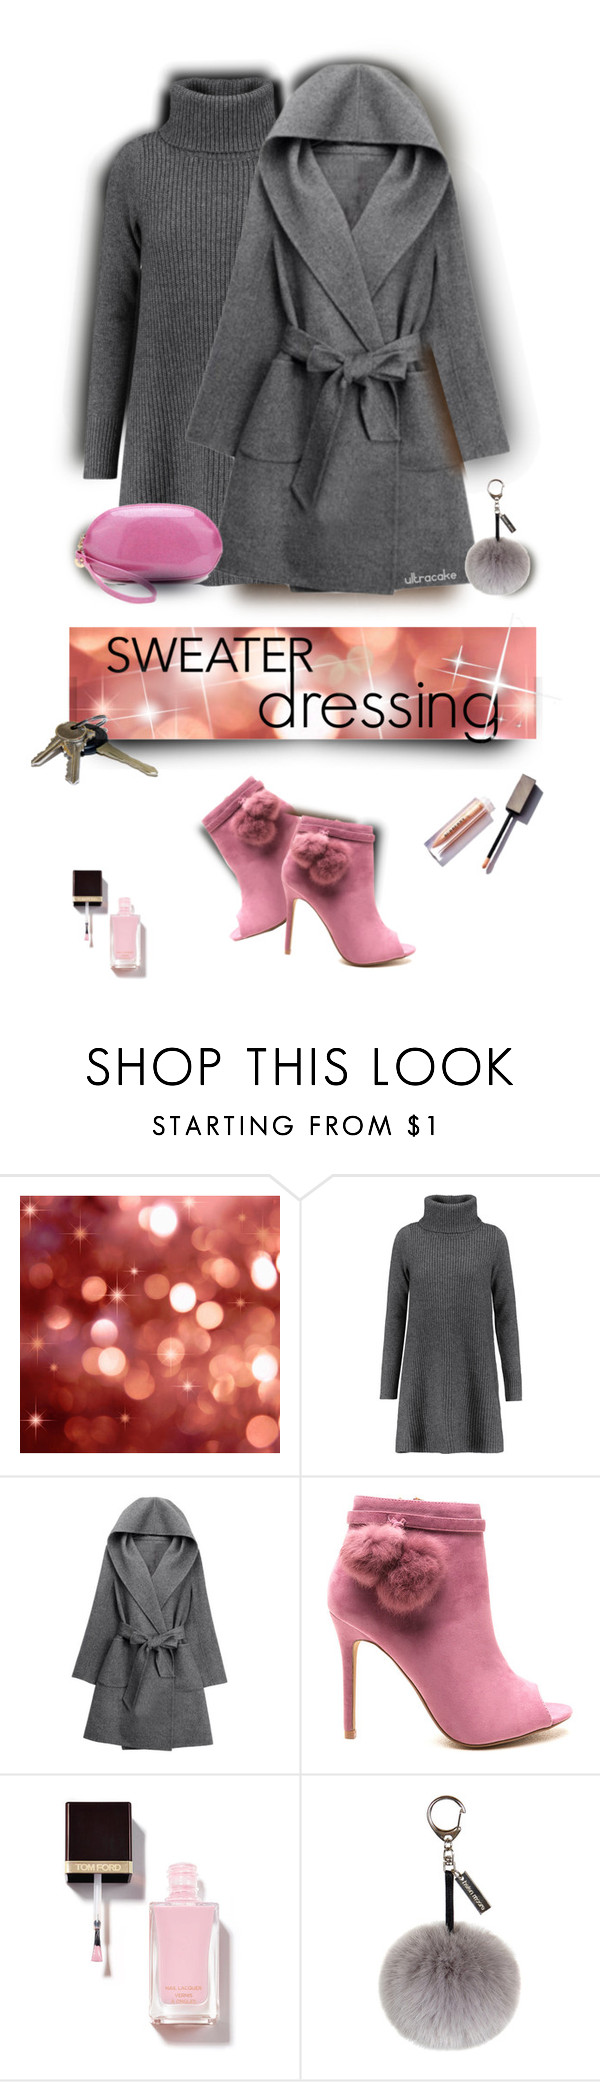 """Sweater Dressing"" by ultracake ❤ liked on Polyvore featuring Madeleine Thompson, WithChic, Helen Moore, Avon, anklebooties, coats, sweaterdress and ultracake"